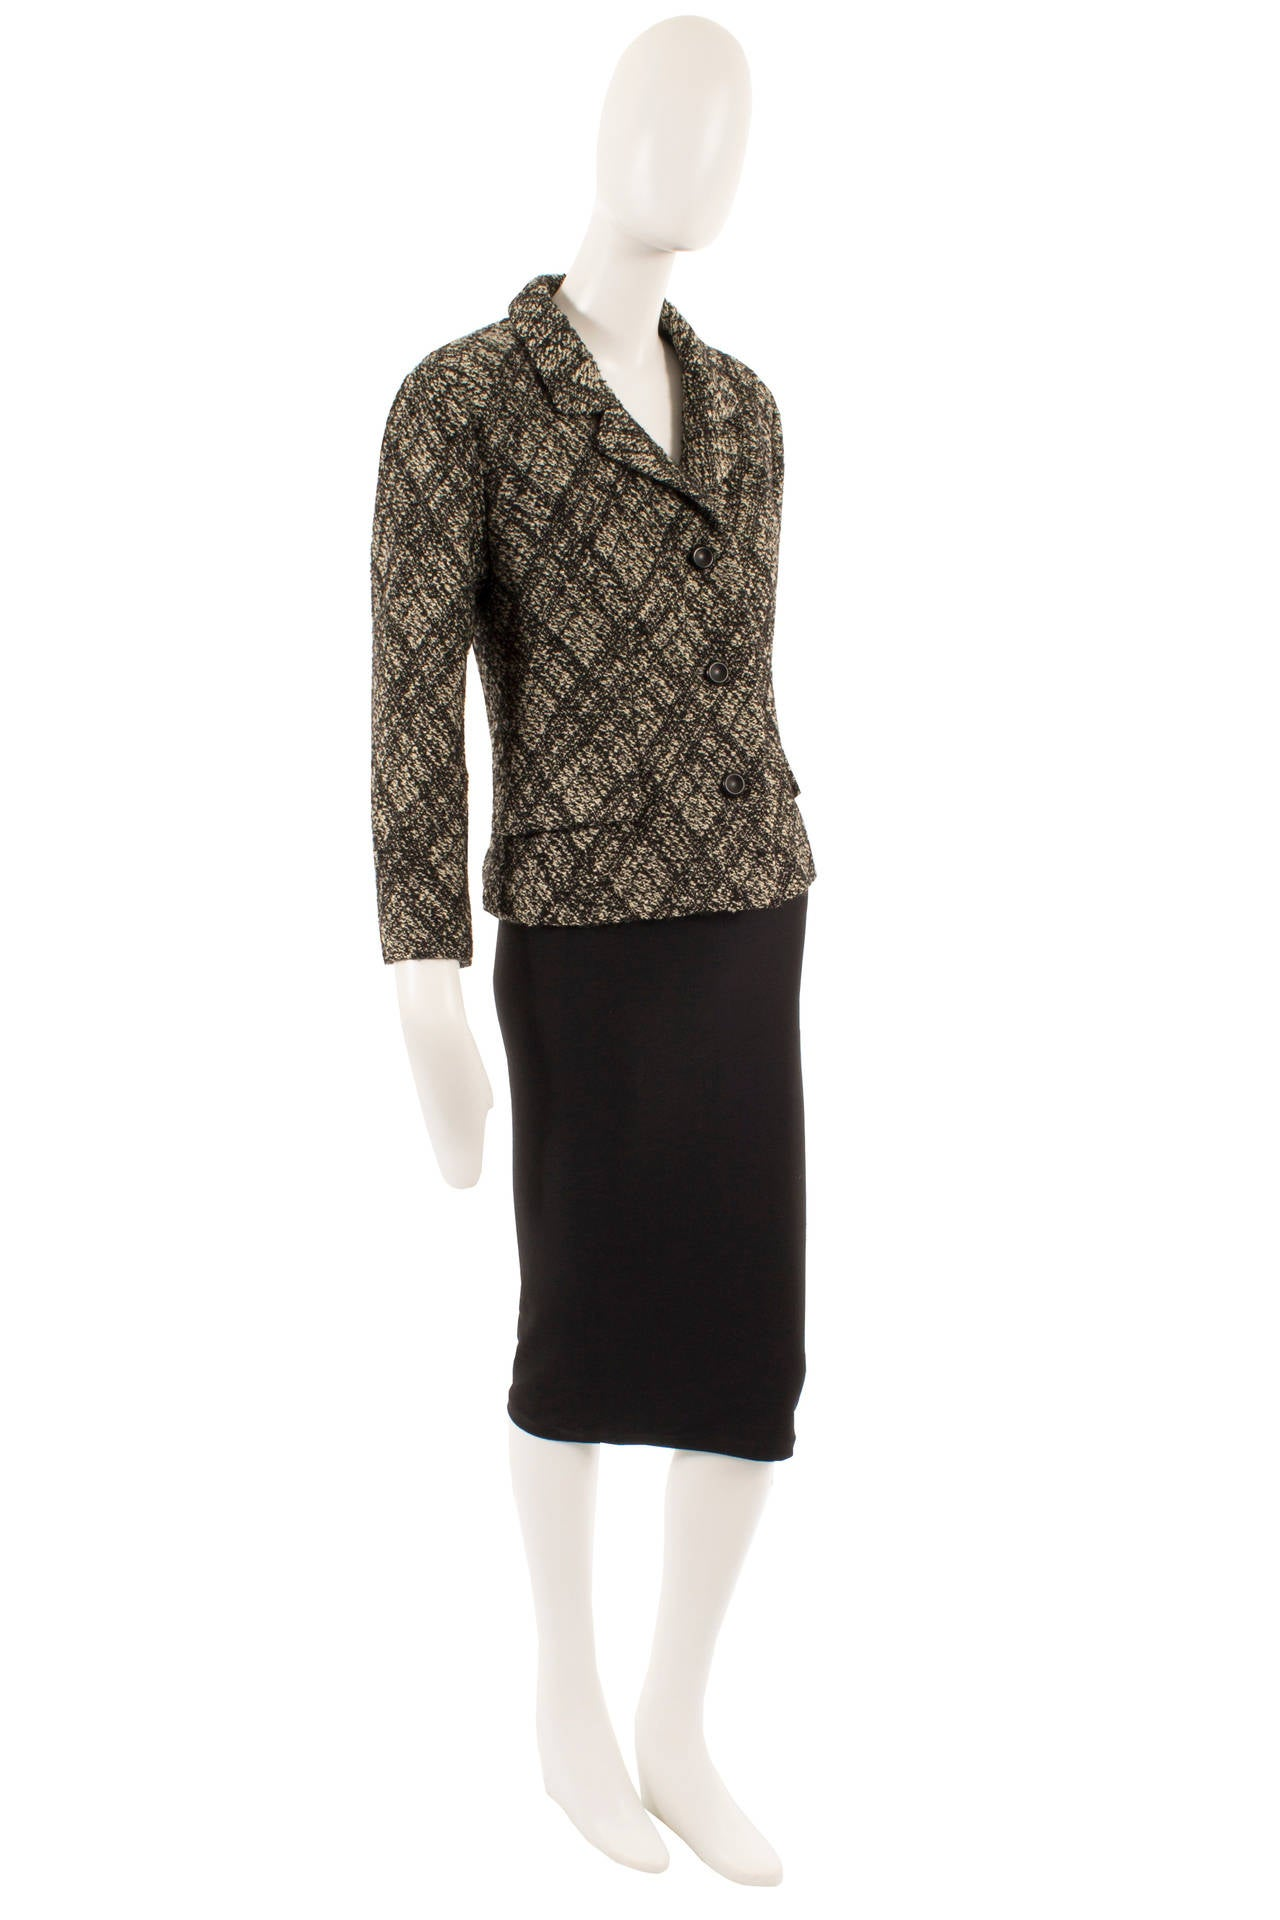 yves saint laurent haute couture wool jacket circa 1964 for sale at 1stdibs. Black Bedroom Furniture Sets. Home Design Ideas